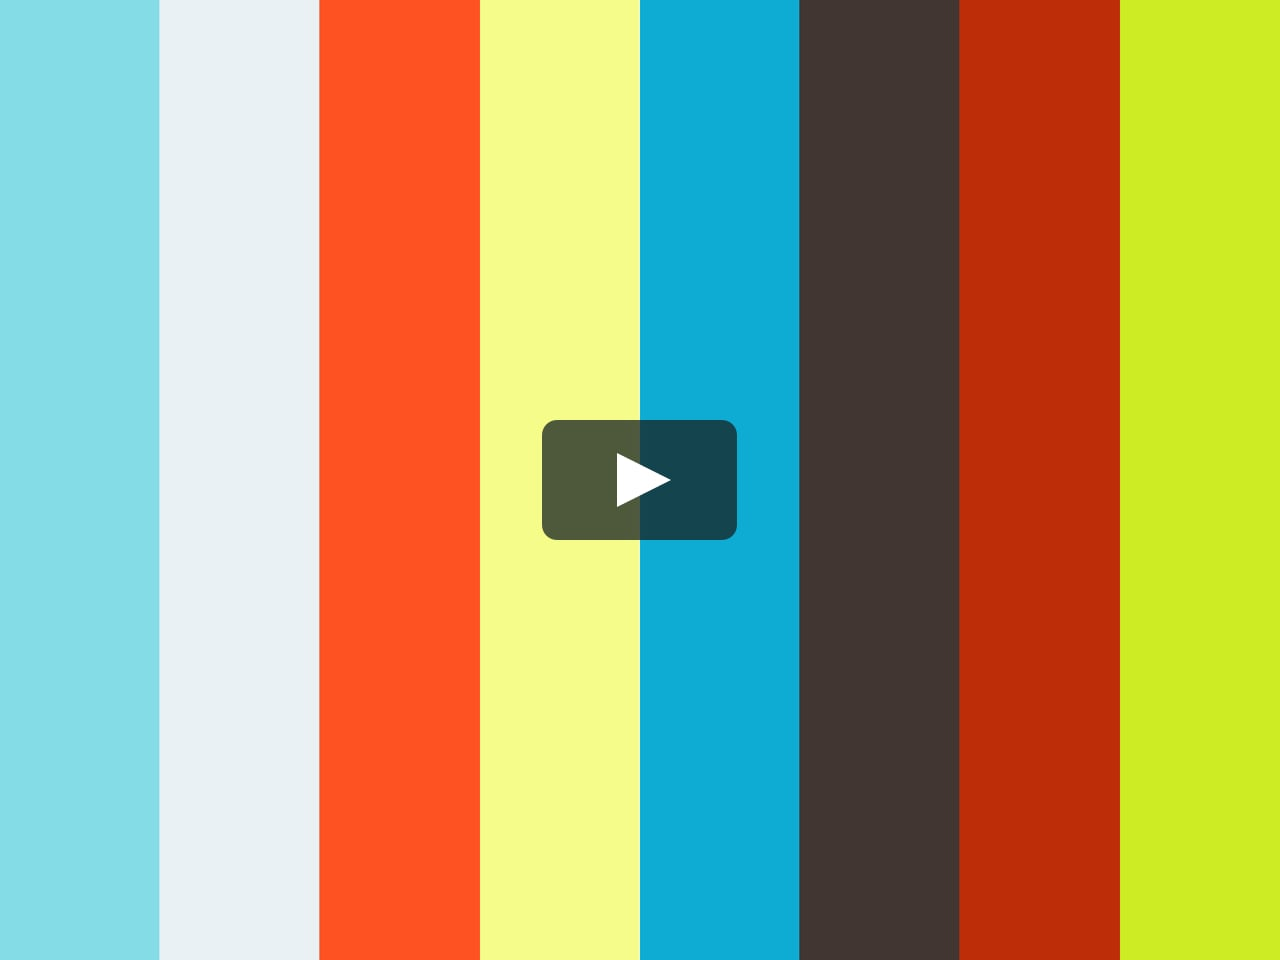 Elena Papandreou plays Nikita KOSHKIN  Megaron  concerto for guitar and orchestra - II movement